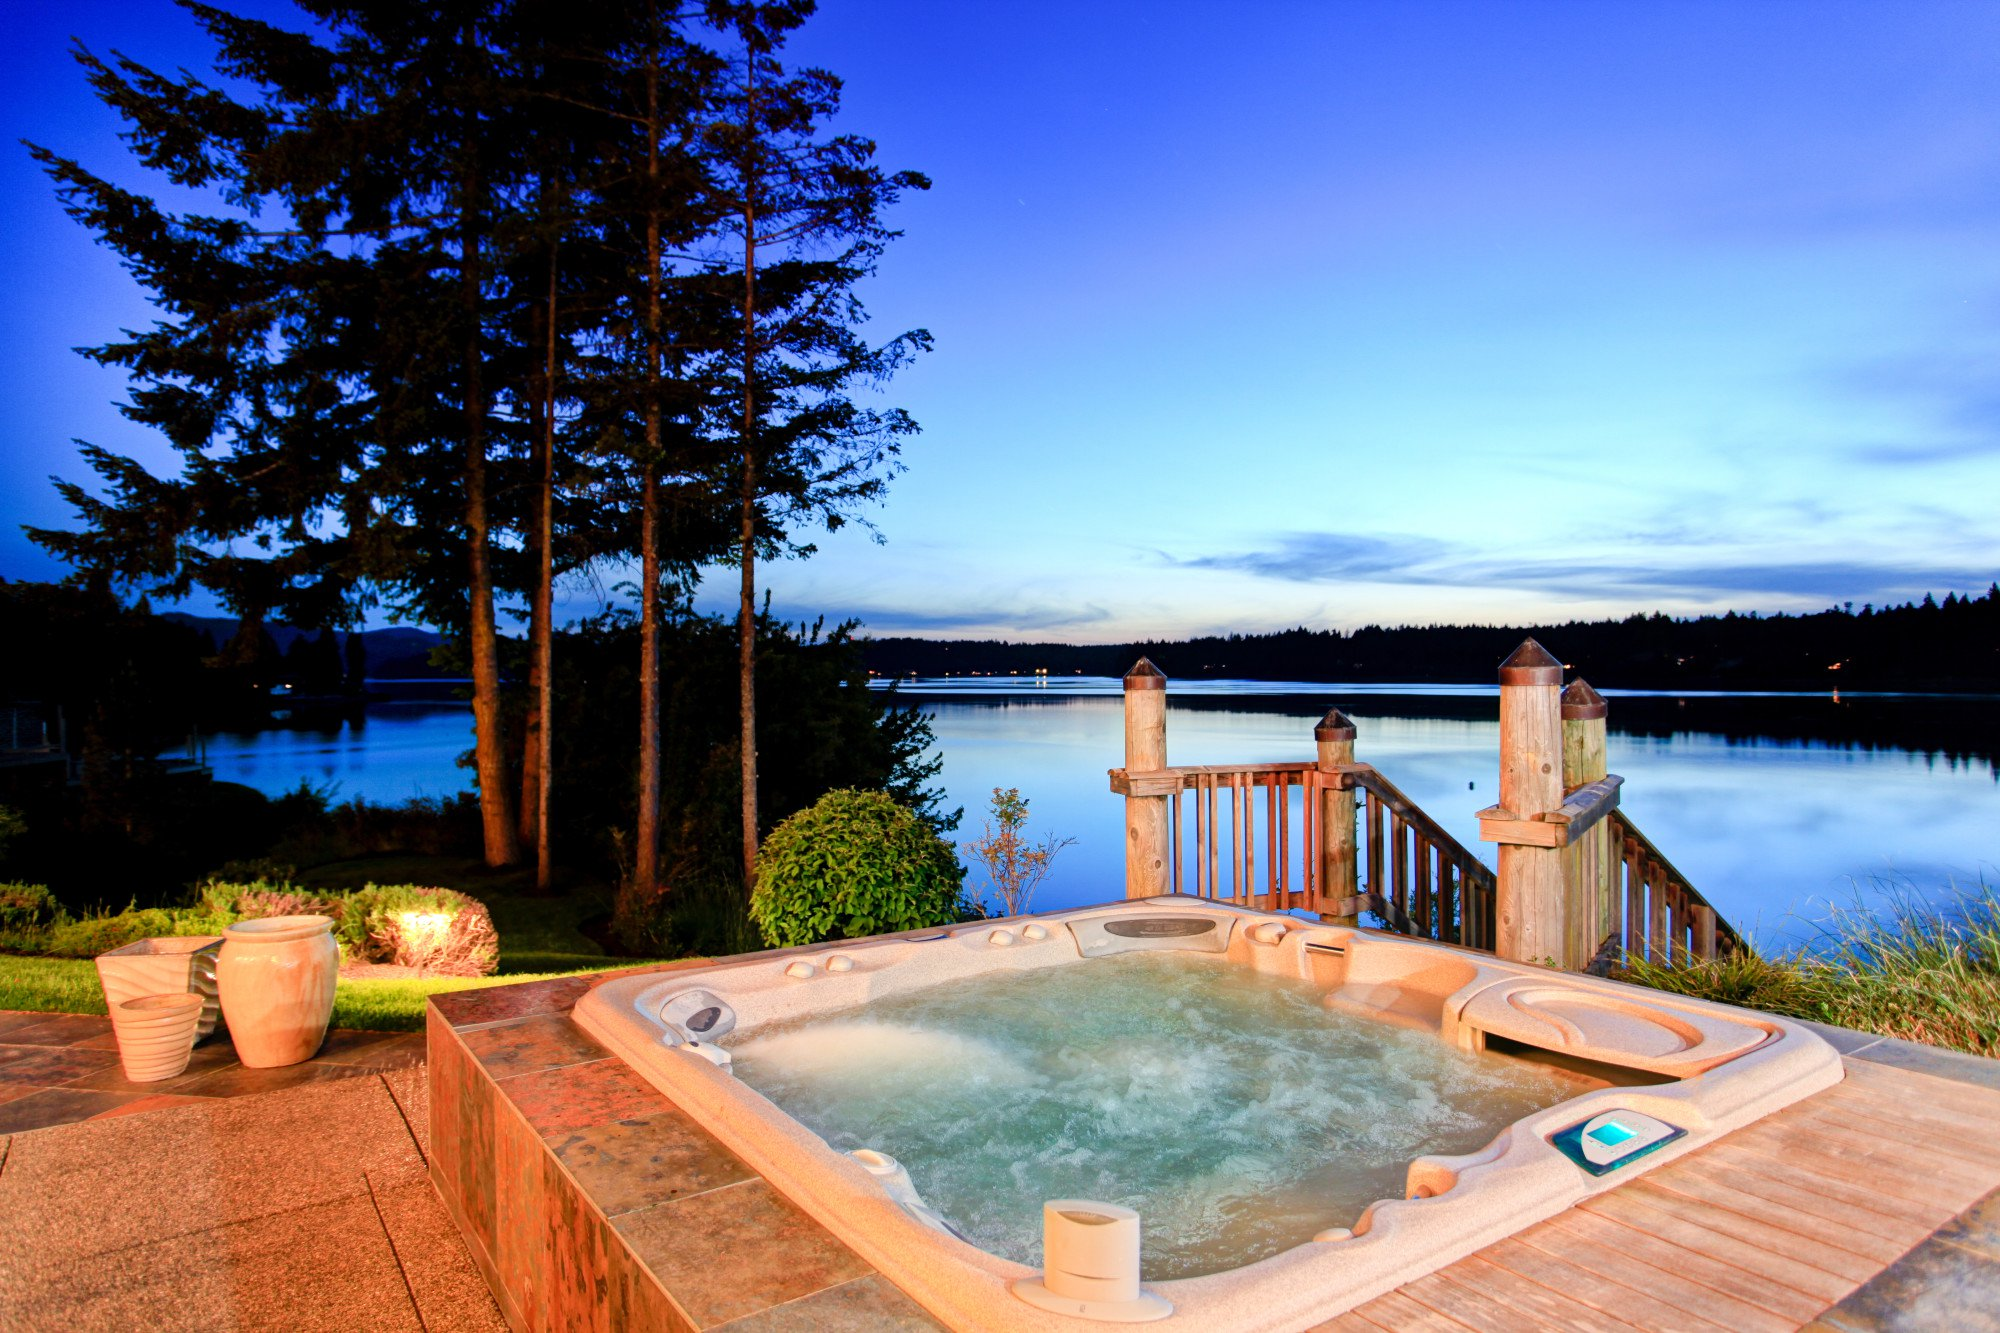 Skip the Spa Trip: The Soothing Benefits of Installing a Hot Tub